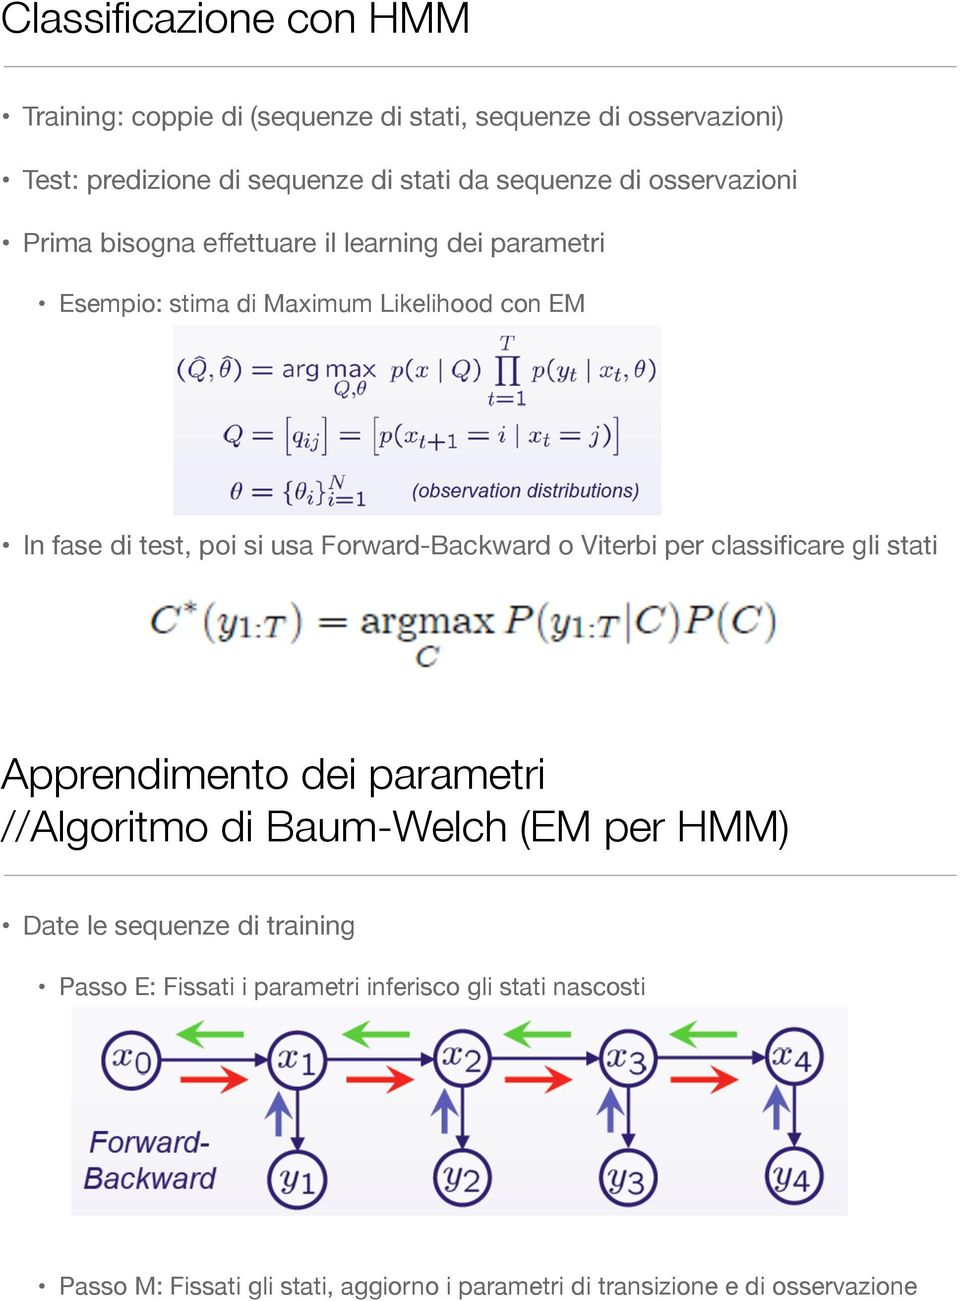 Forward-Backward o Viterbi per classificare gli stati Apprendimento dei parametri //Algoritmo di Baum-Welch (EM per HMM) Date le sequenze di